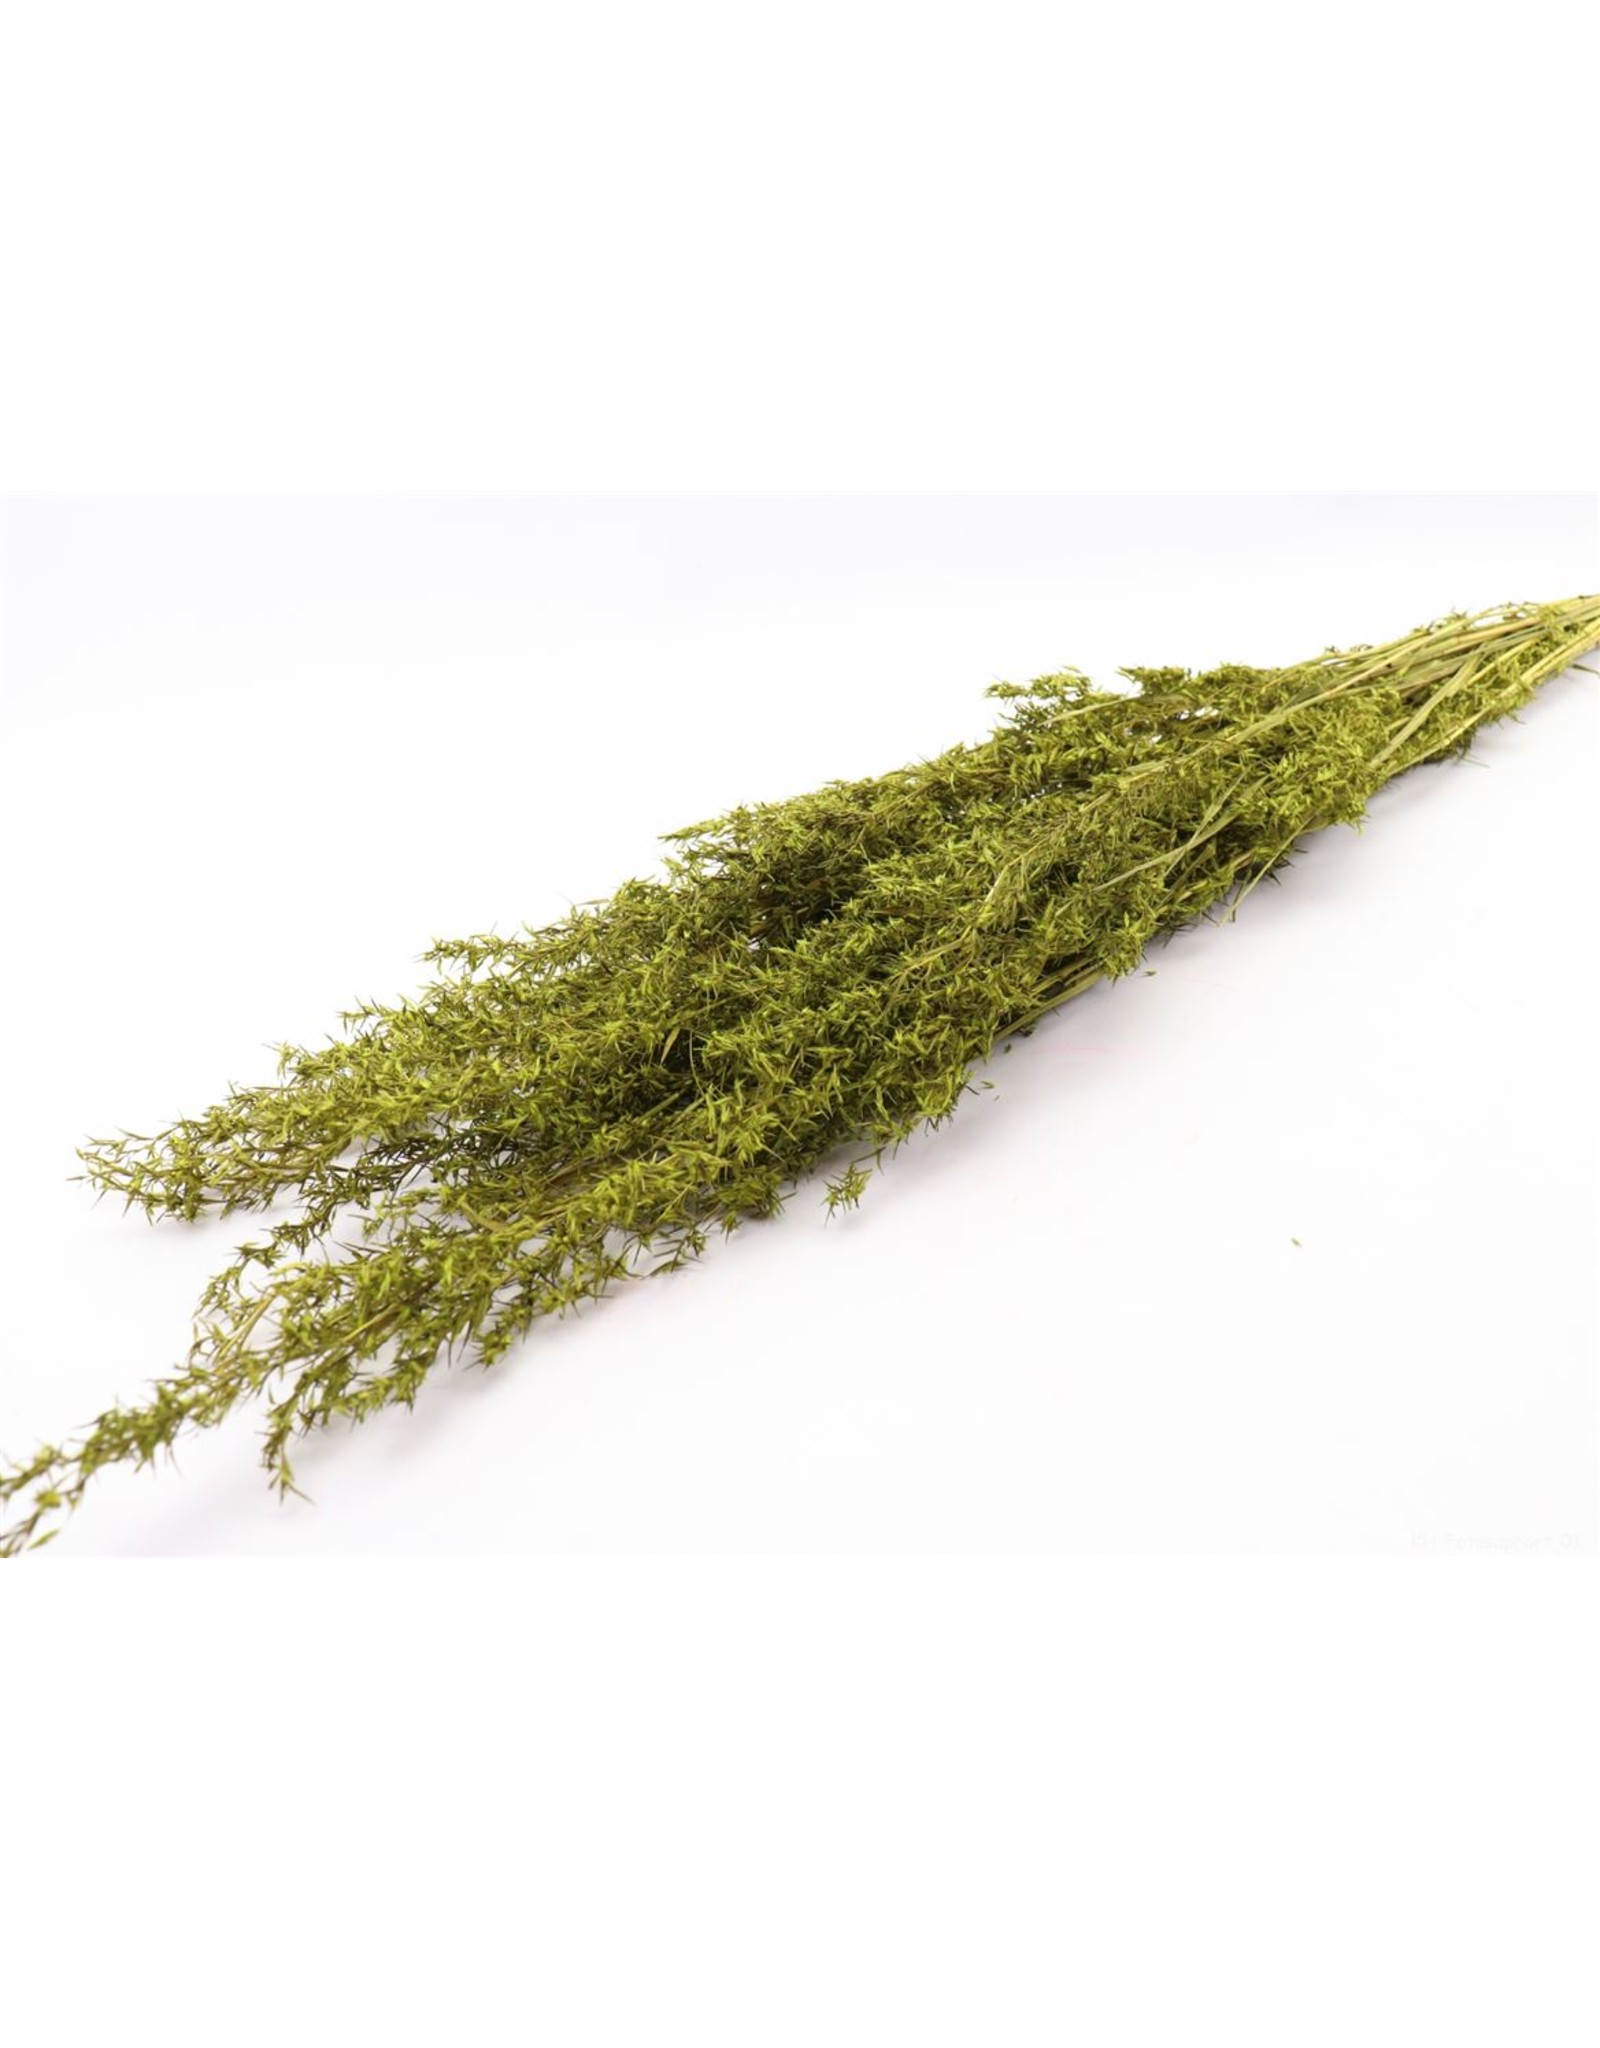 HD bos Beta Grass in hoes 100 gram  ↑100.0 (x 24)